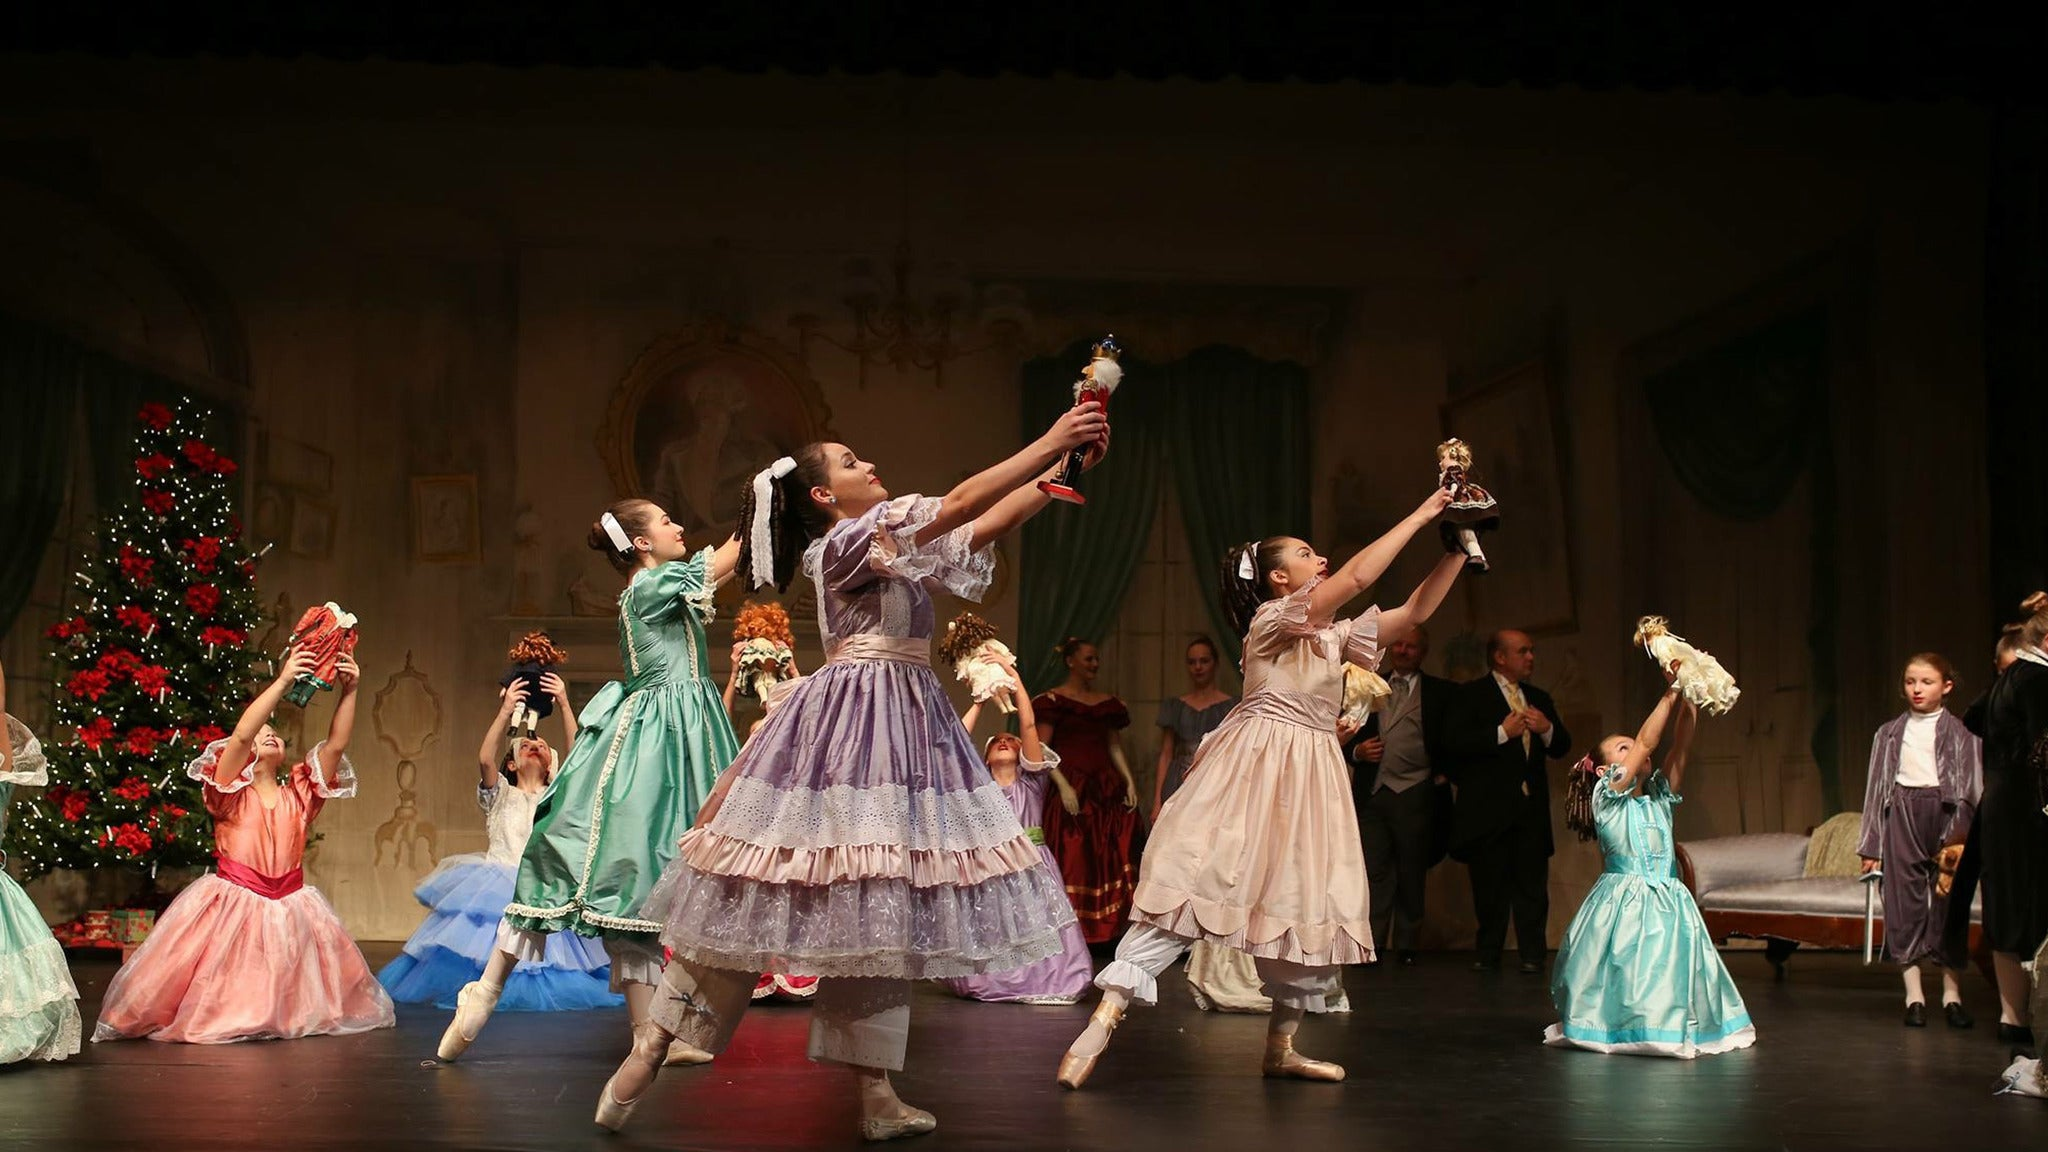 Los Angeles Ballet Presents The Nutcracker